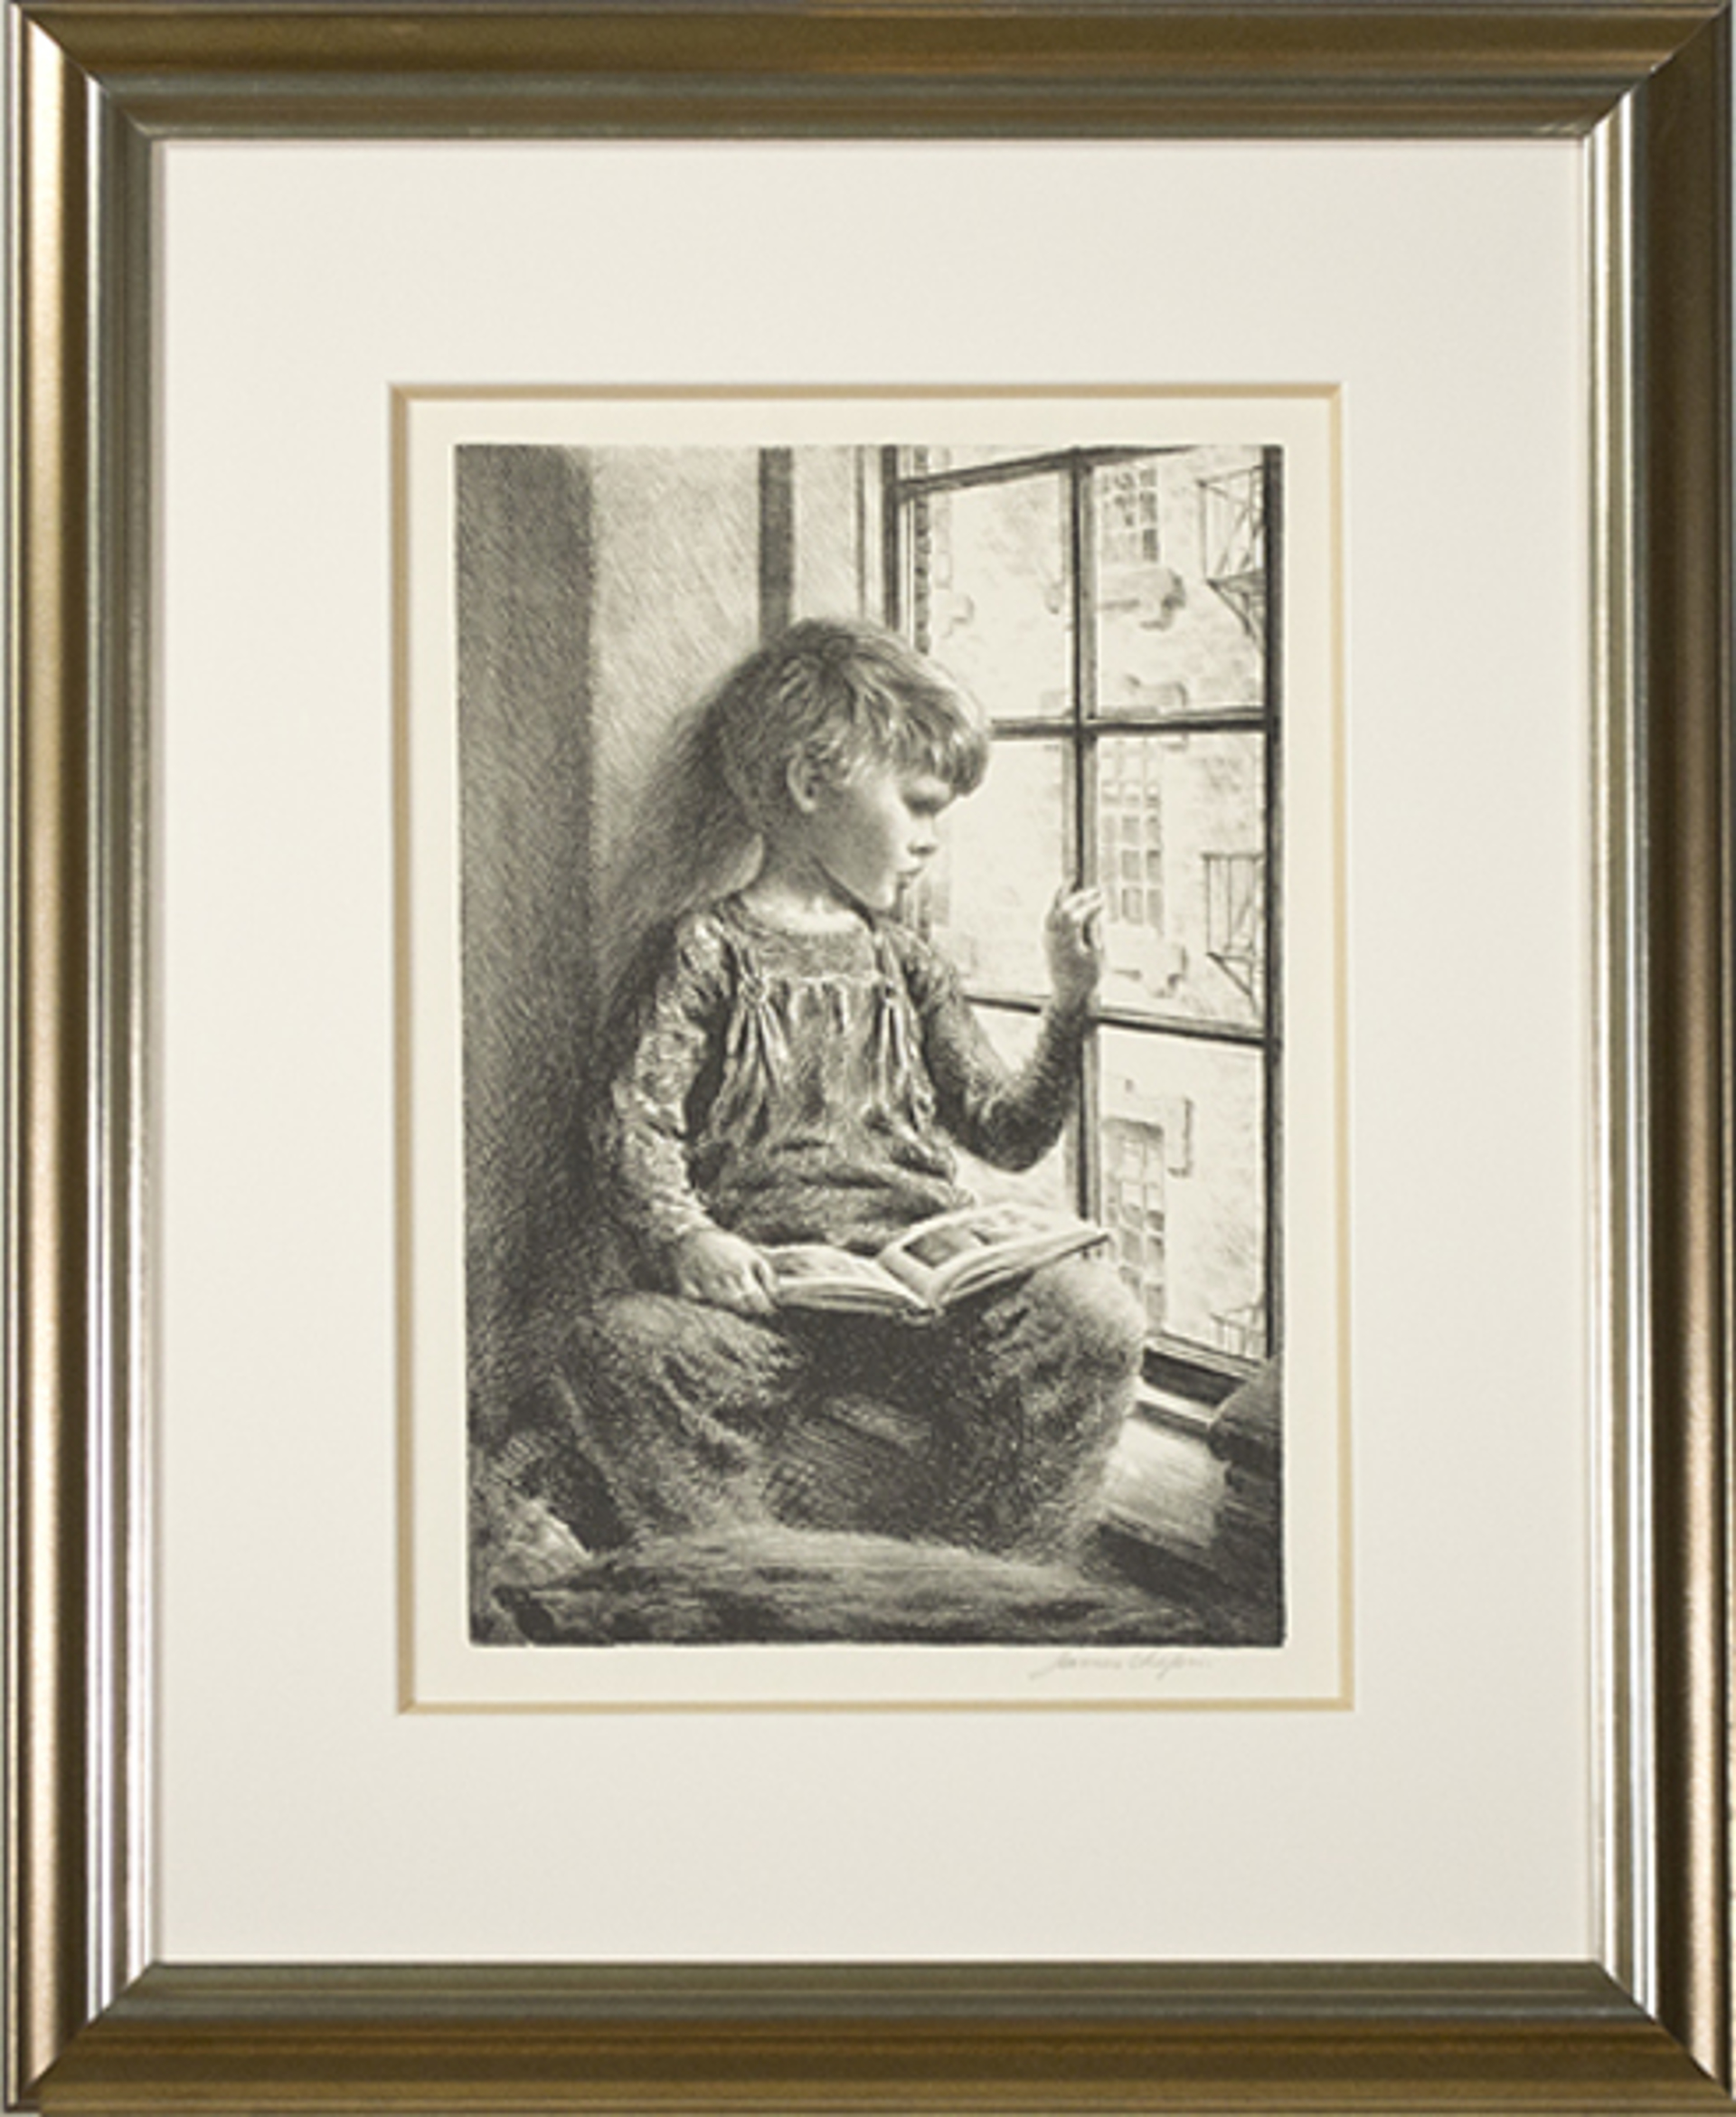 Boy With Book Looking Out Window by James Ormsbee Chapin